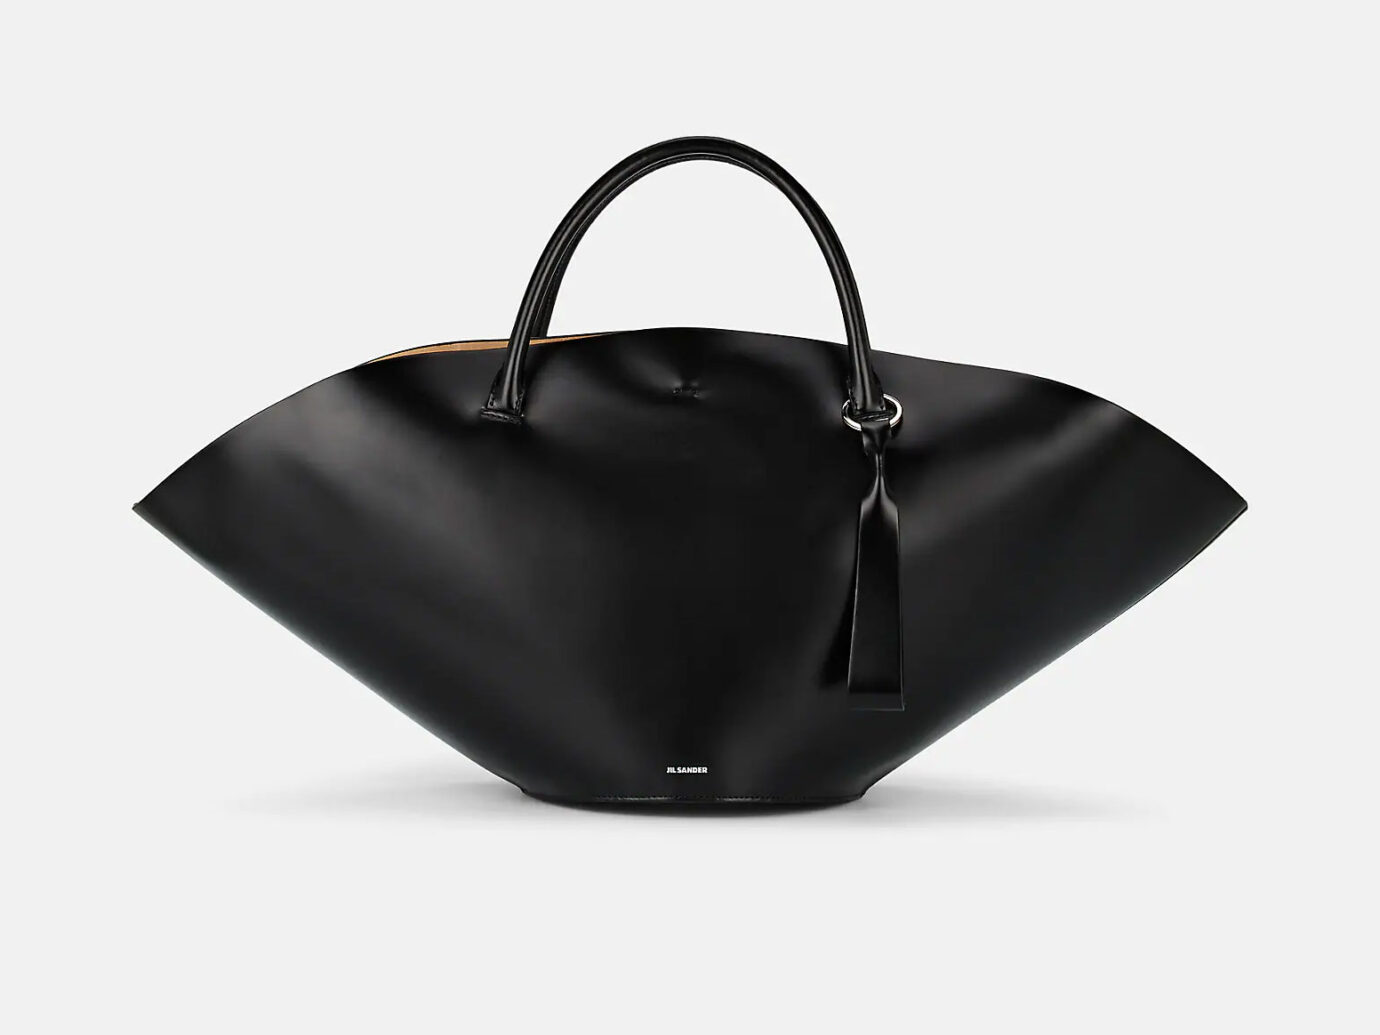 Jil Sander Sombrero Medium Leather Tote Bag